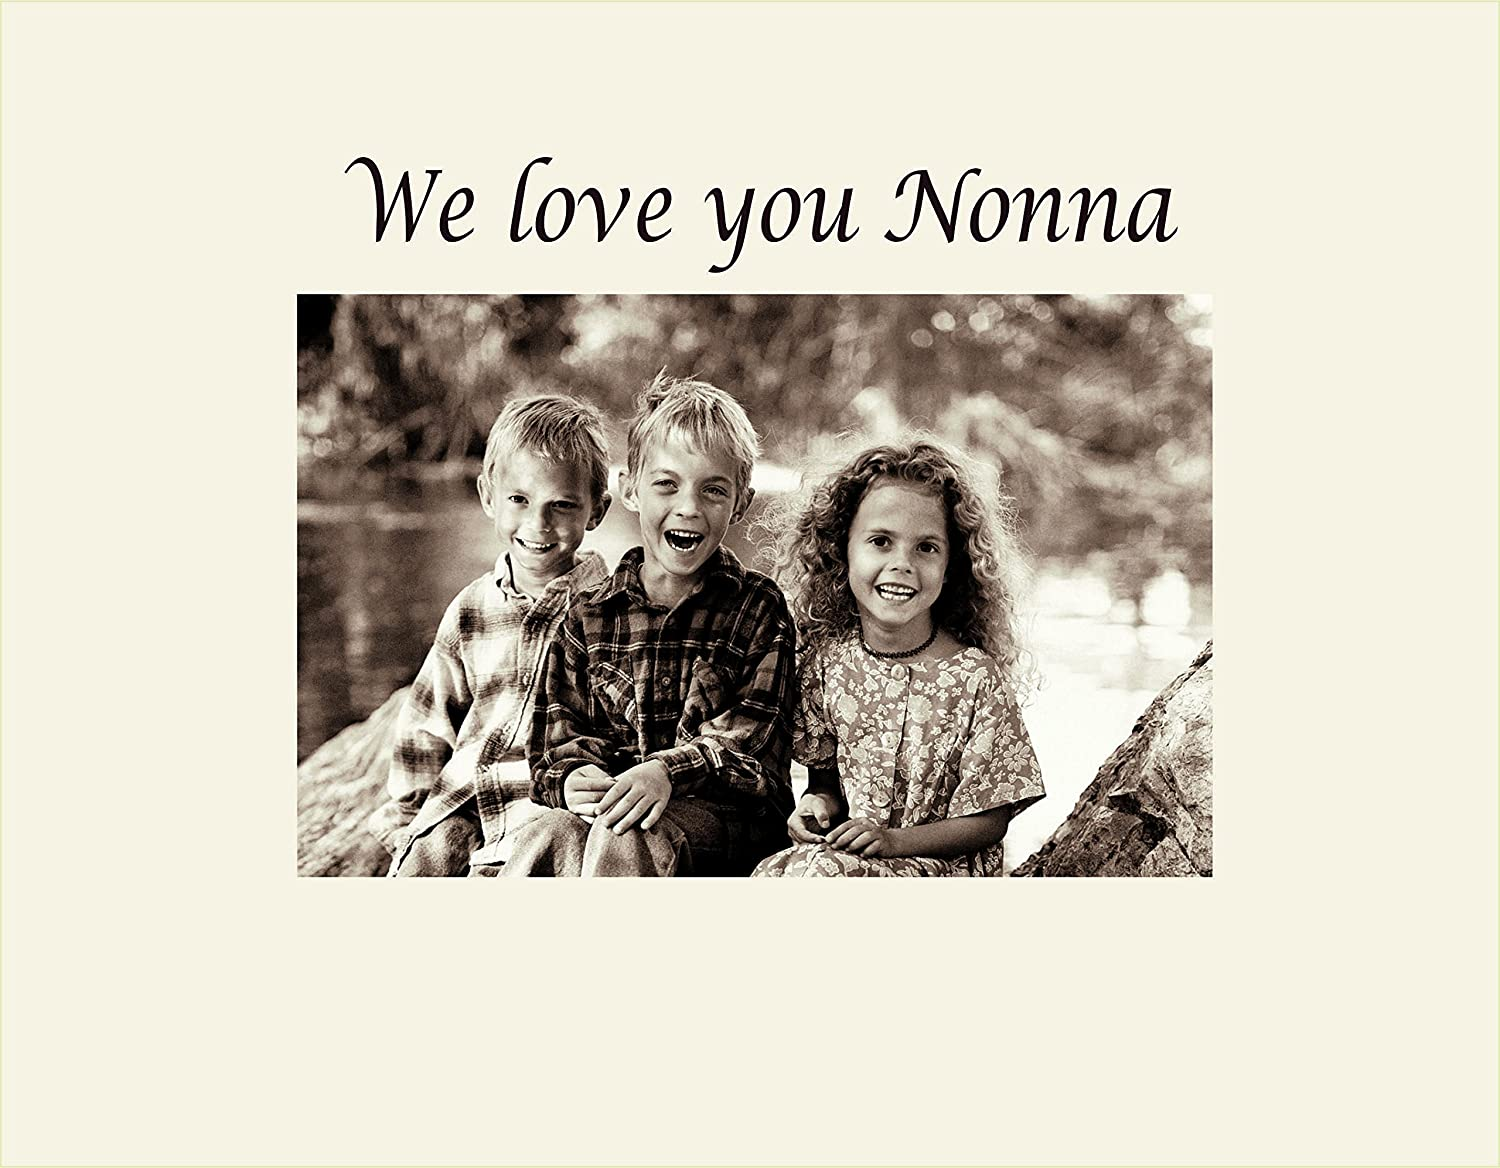 Amazon.com - Infusion Gifts 9006-SO We Love You Nonna Photo Frame ...